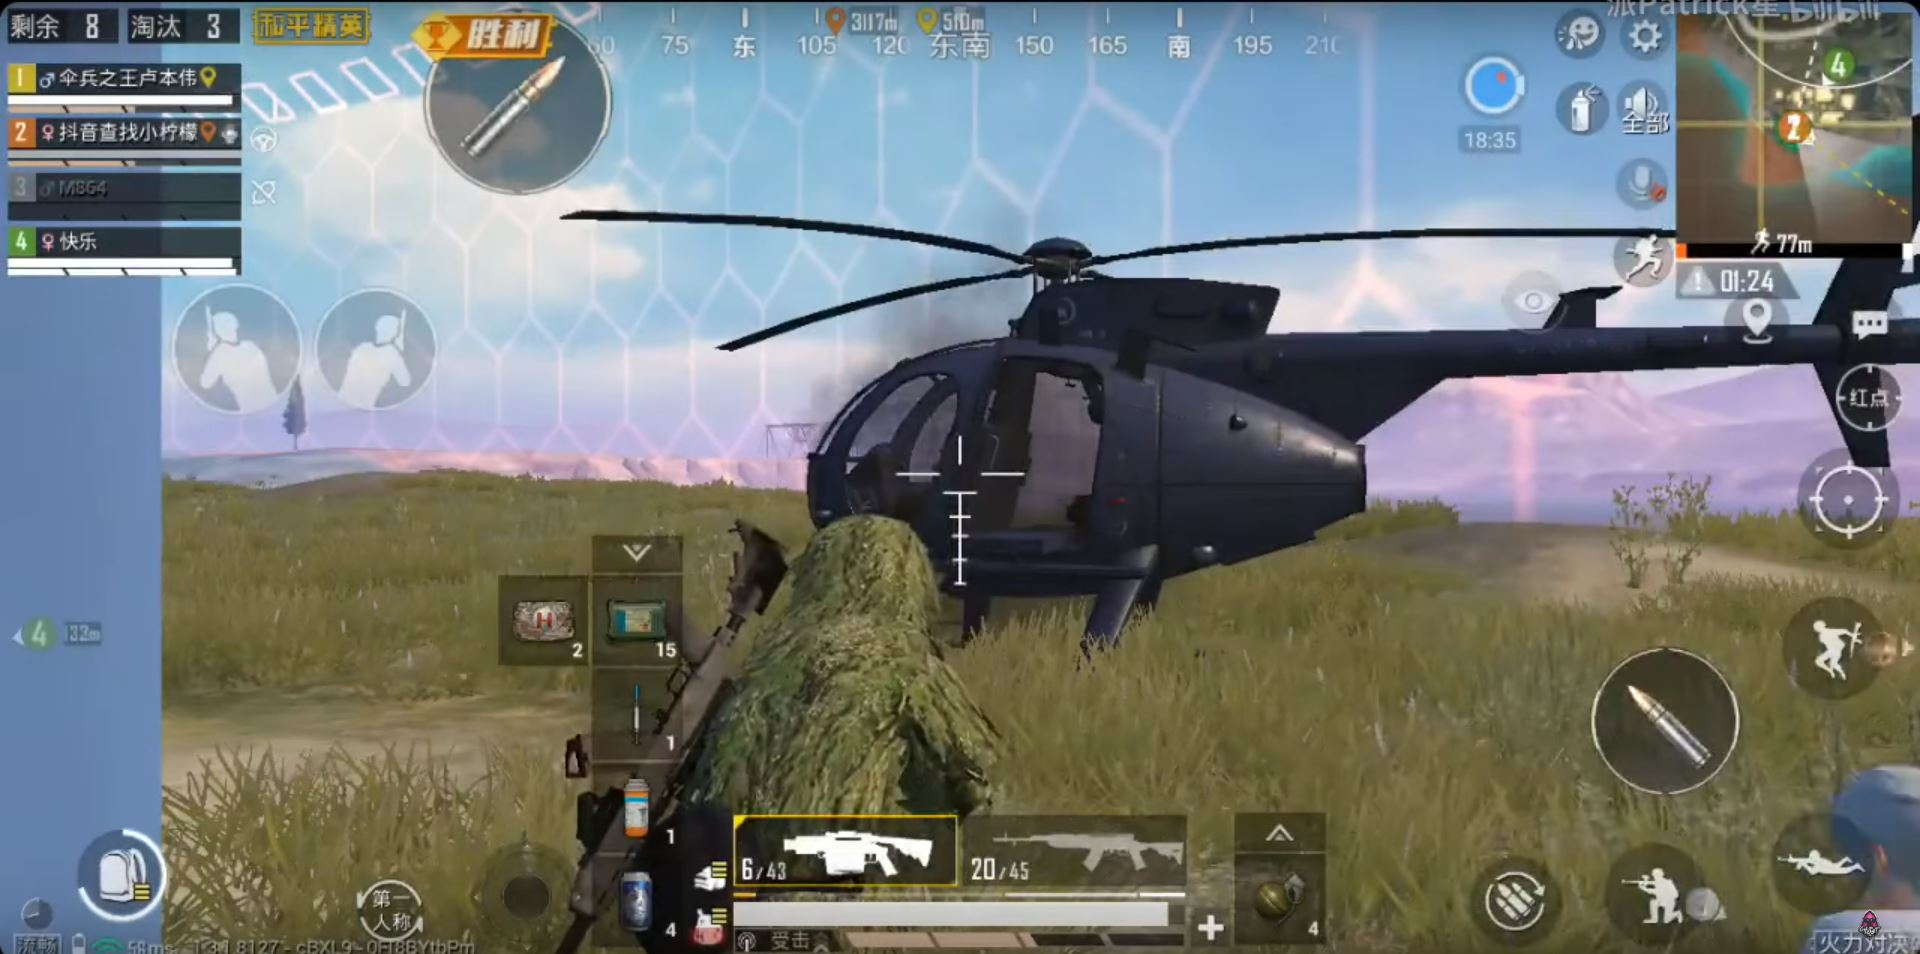 Helikopter di PUBG Mobile